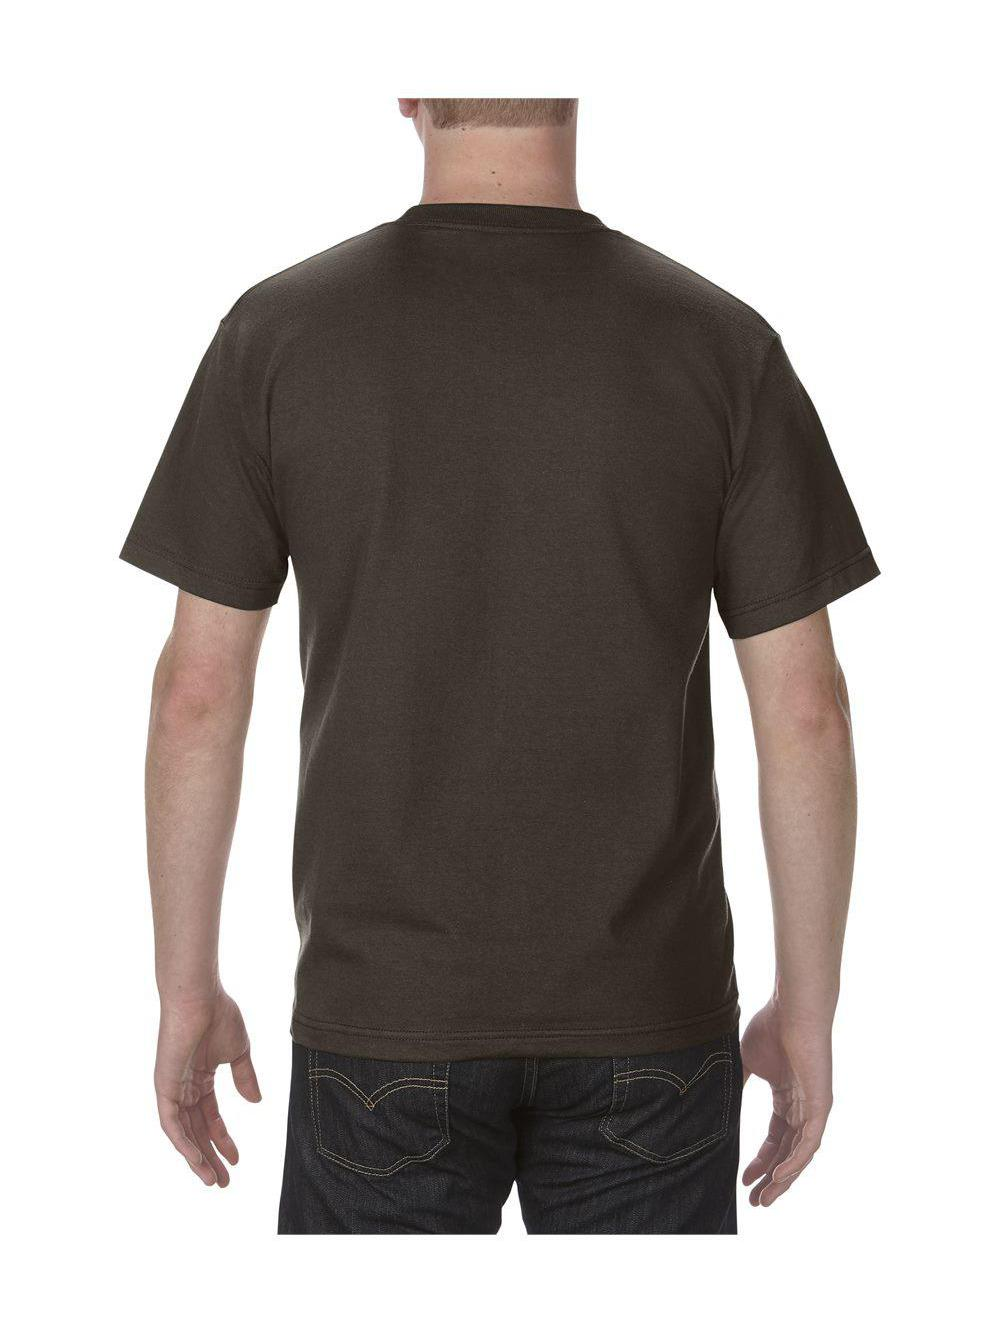 ALSTYLE-Classic-T-Shirt-1301 thumbnail 39